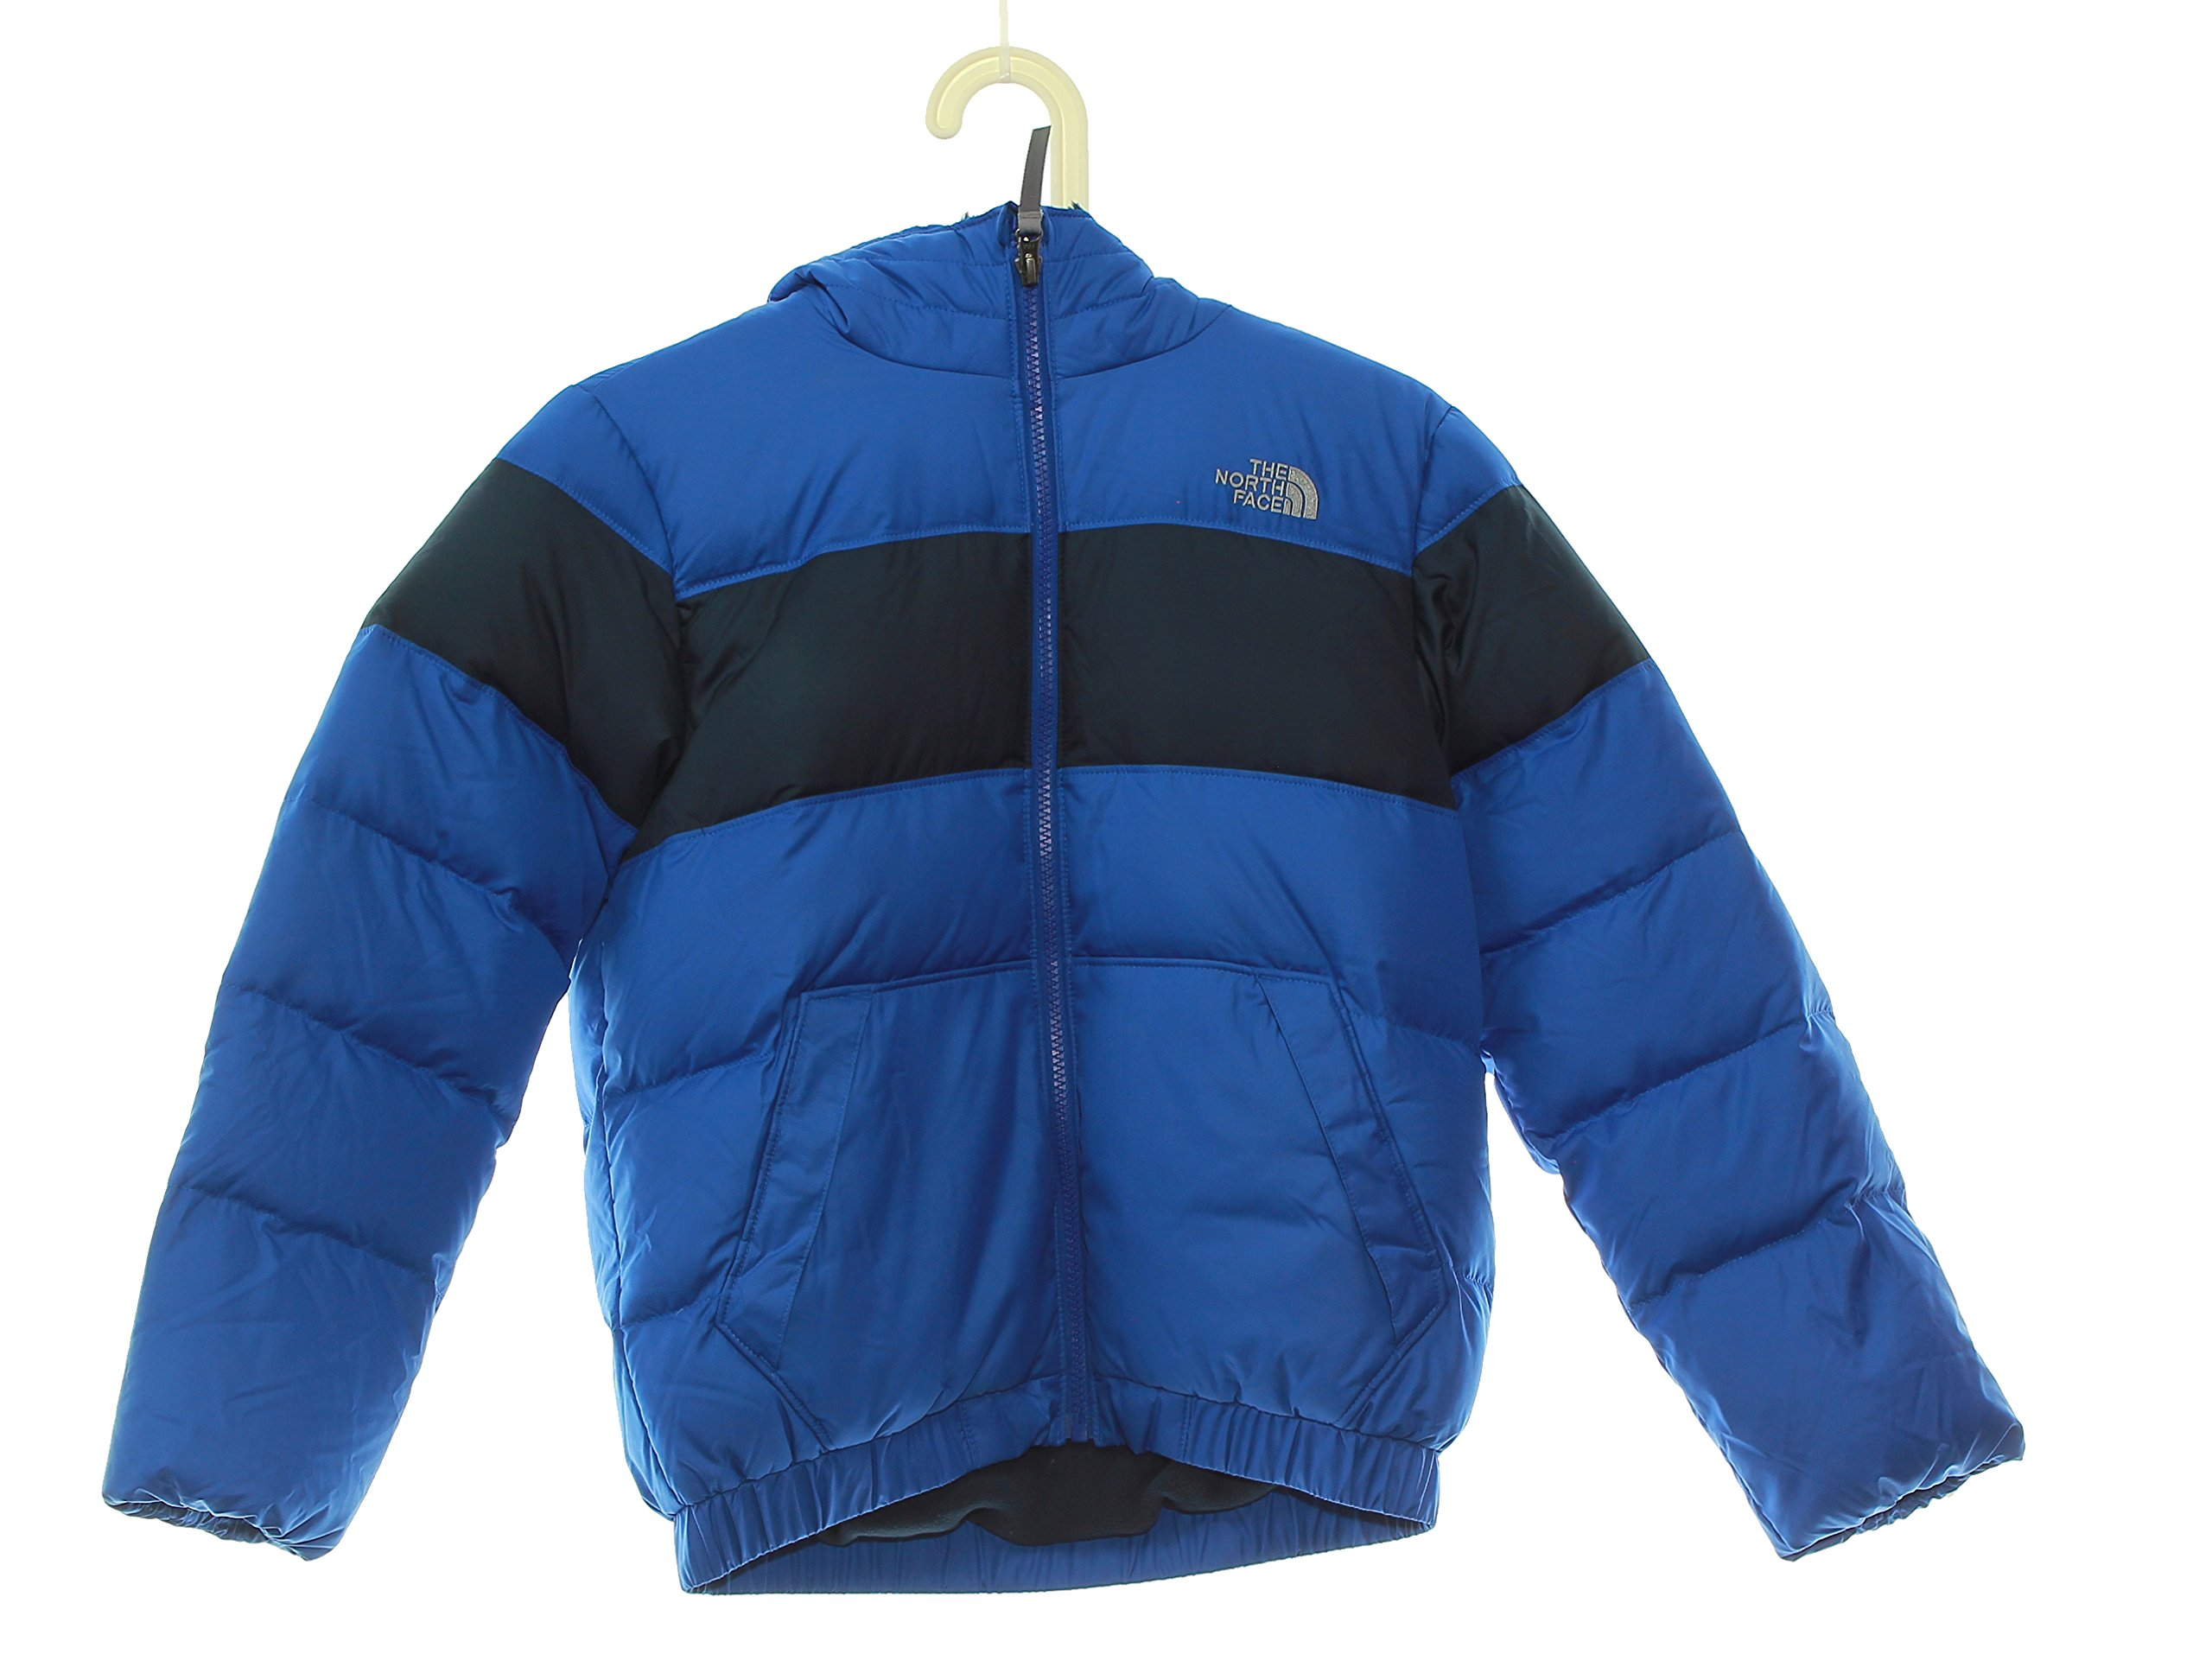 Boy's The North Face Moondoggy 2.0 Down Jacket Size 10/12 Medium Blue by No Warranty The North Face